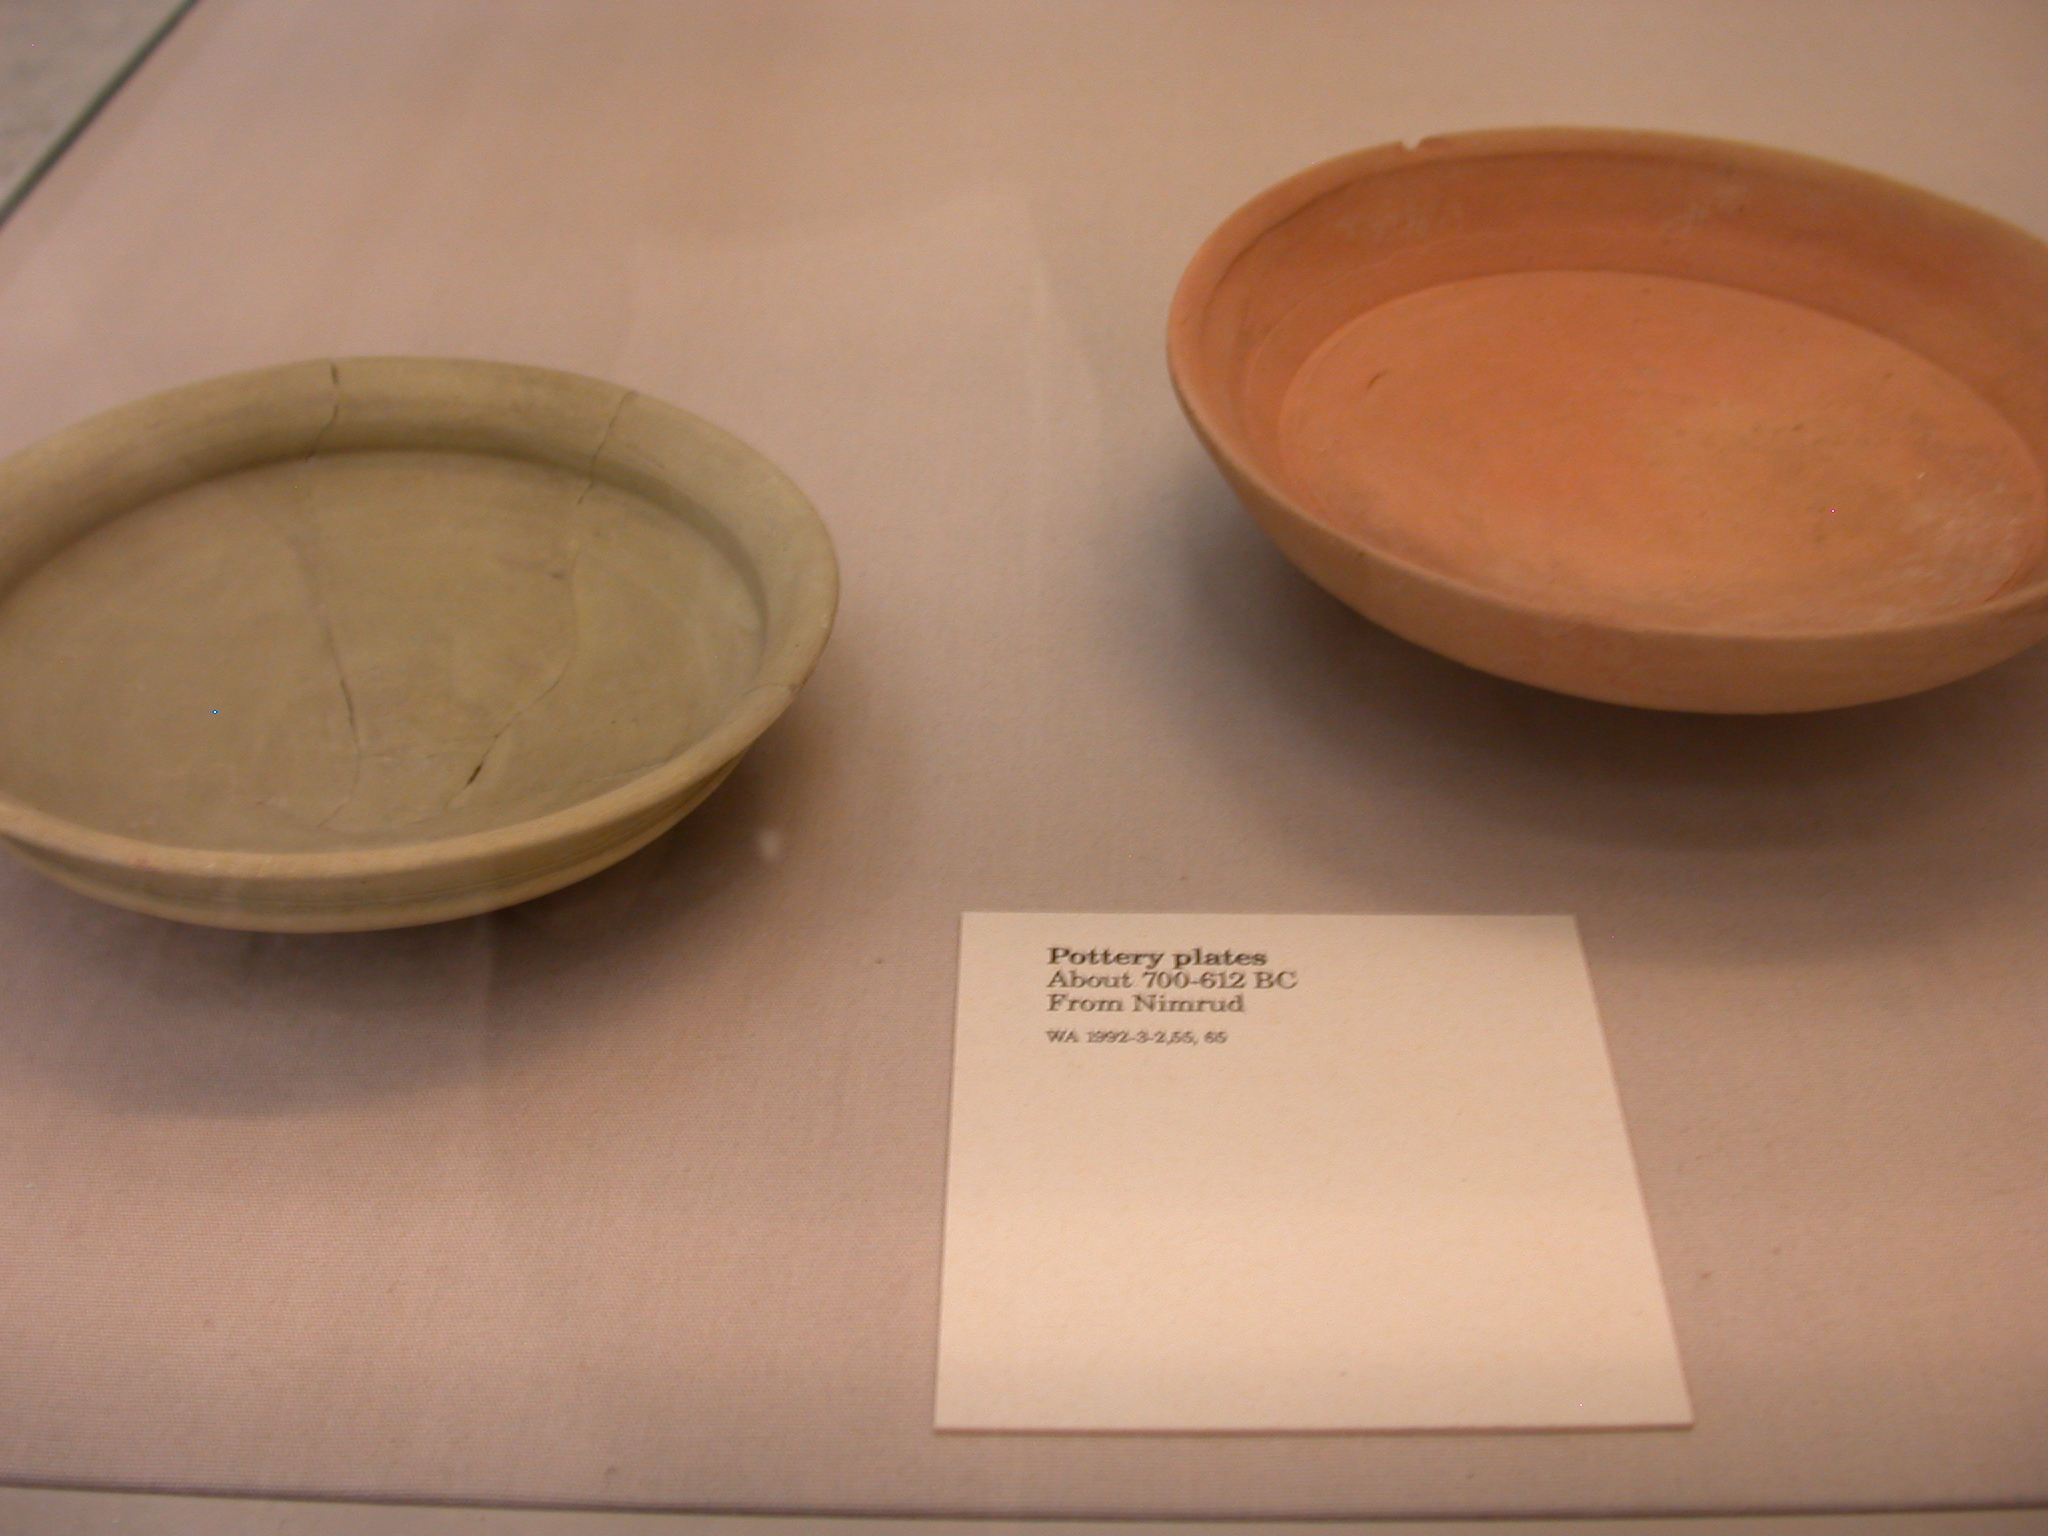 Pottery Plates, About 700-612 BCE, Nimrud, Assyria, in British Museum, London, England